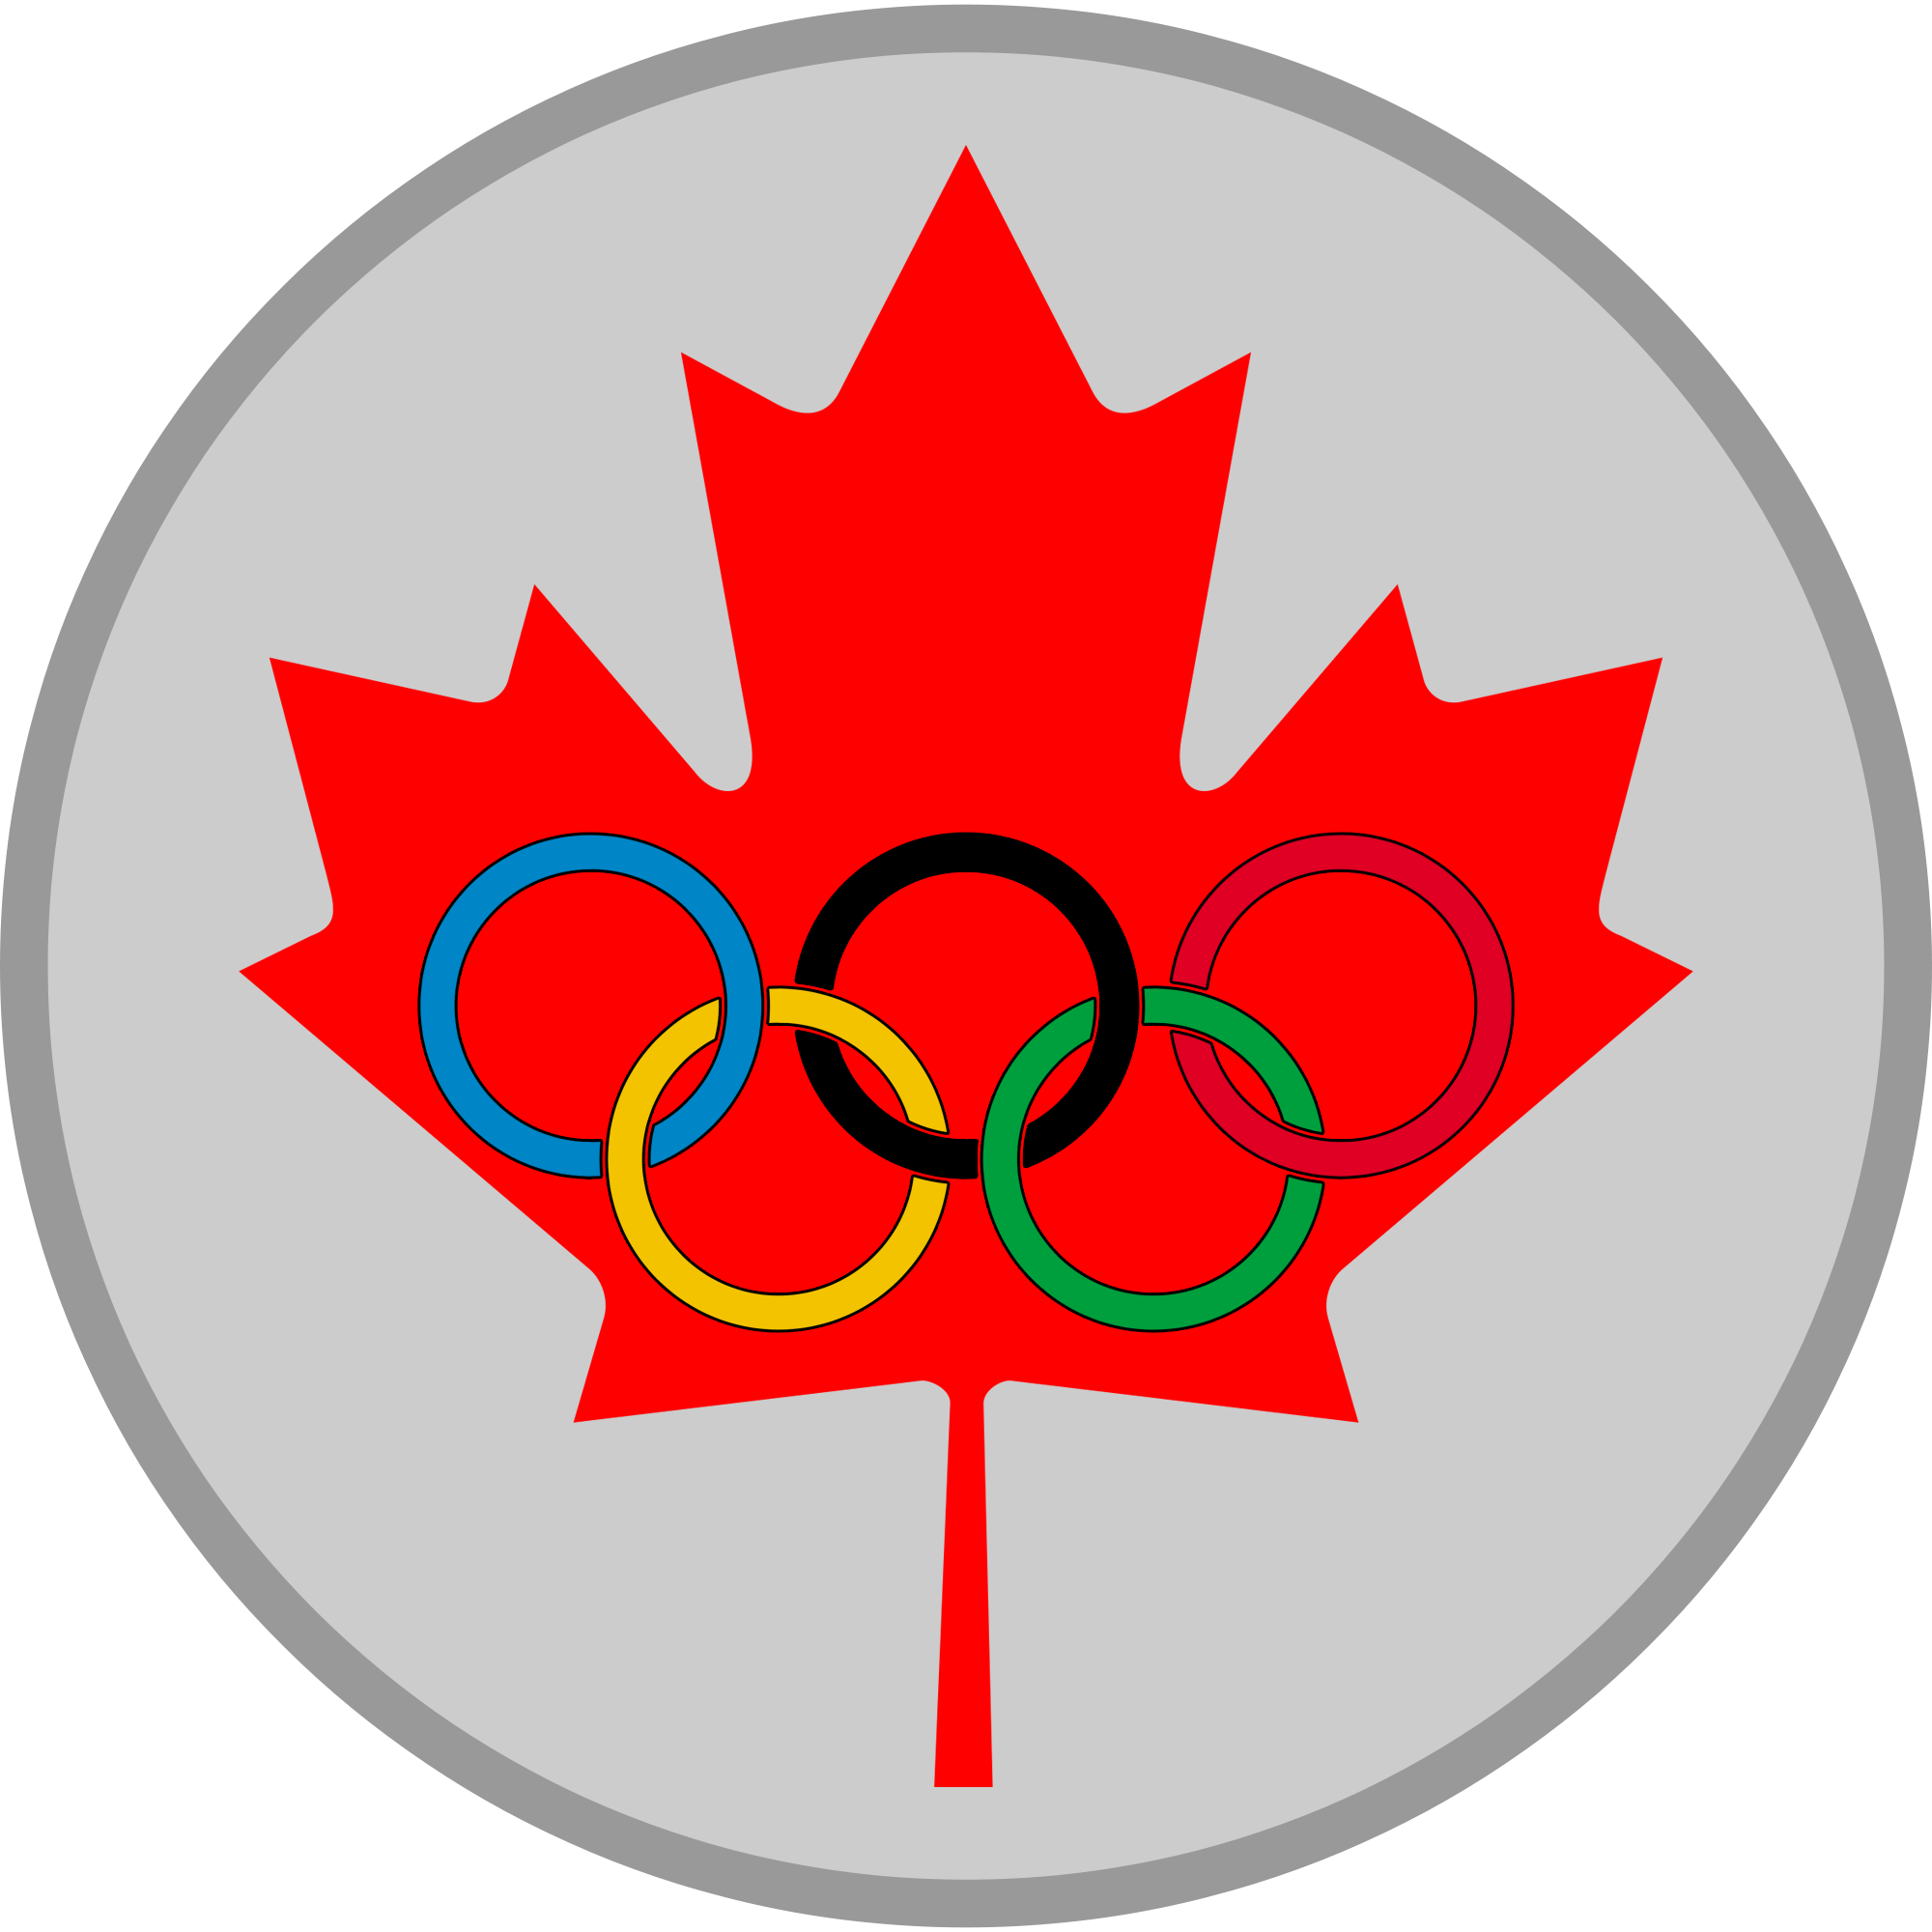 Medal drawing blank. File maple leaf olympic